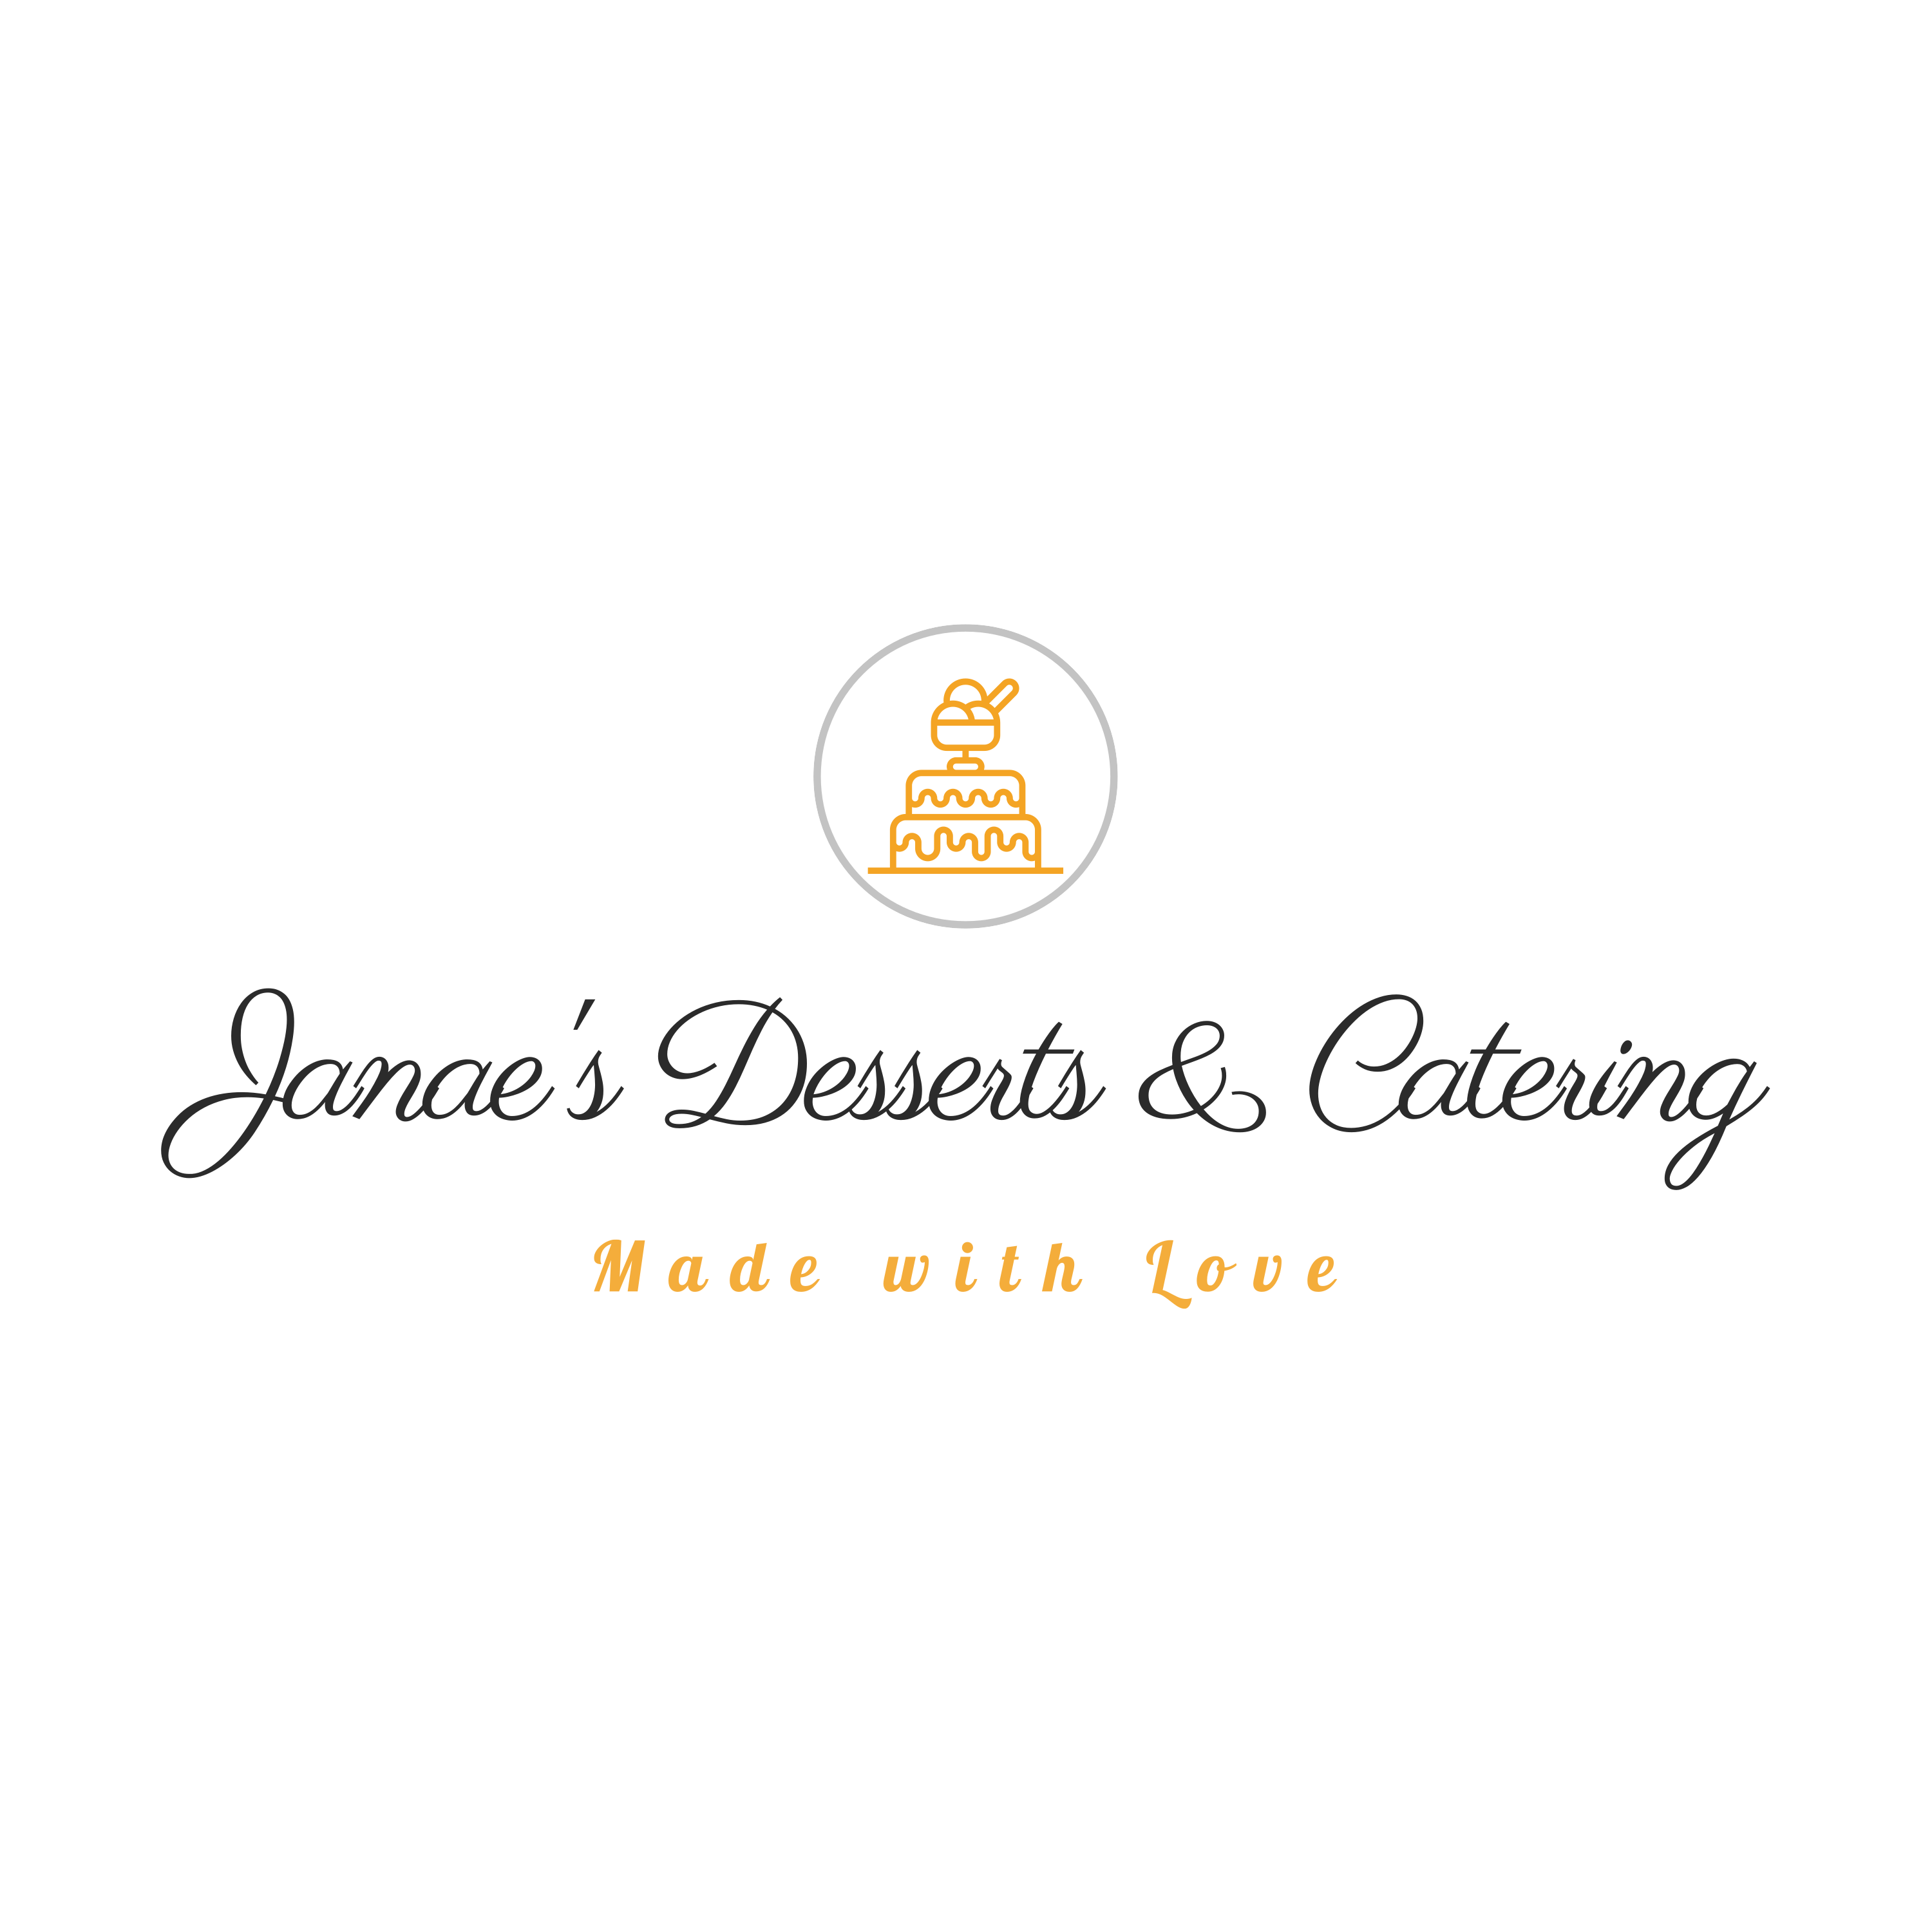 Janae's Desserts & Catering